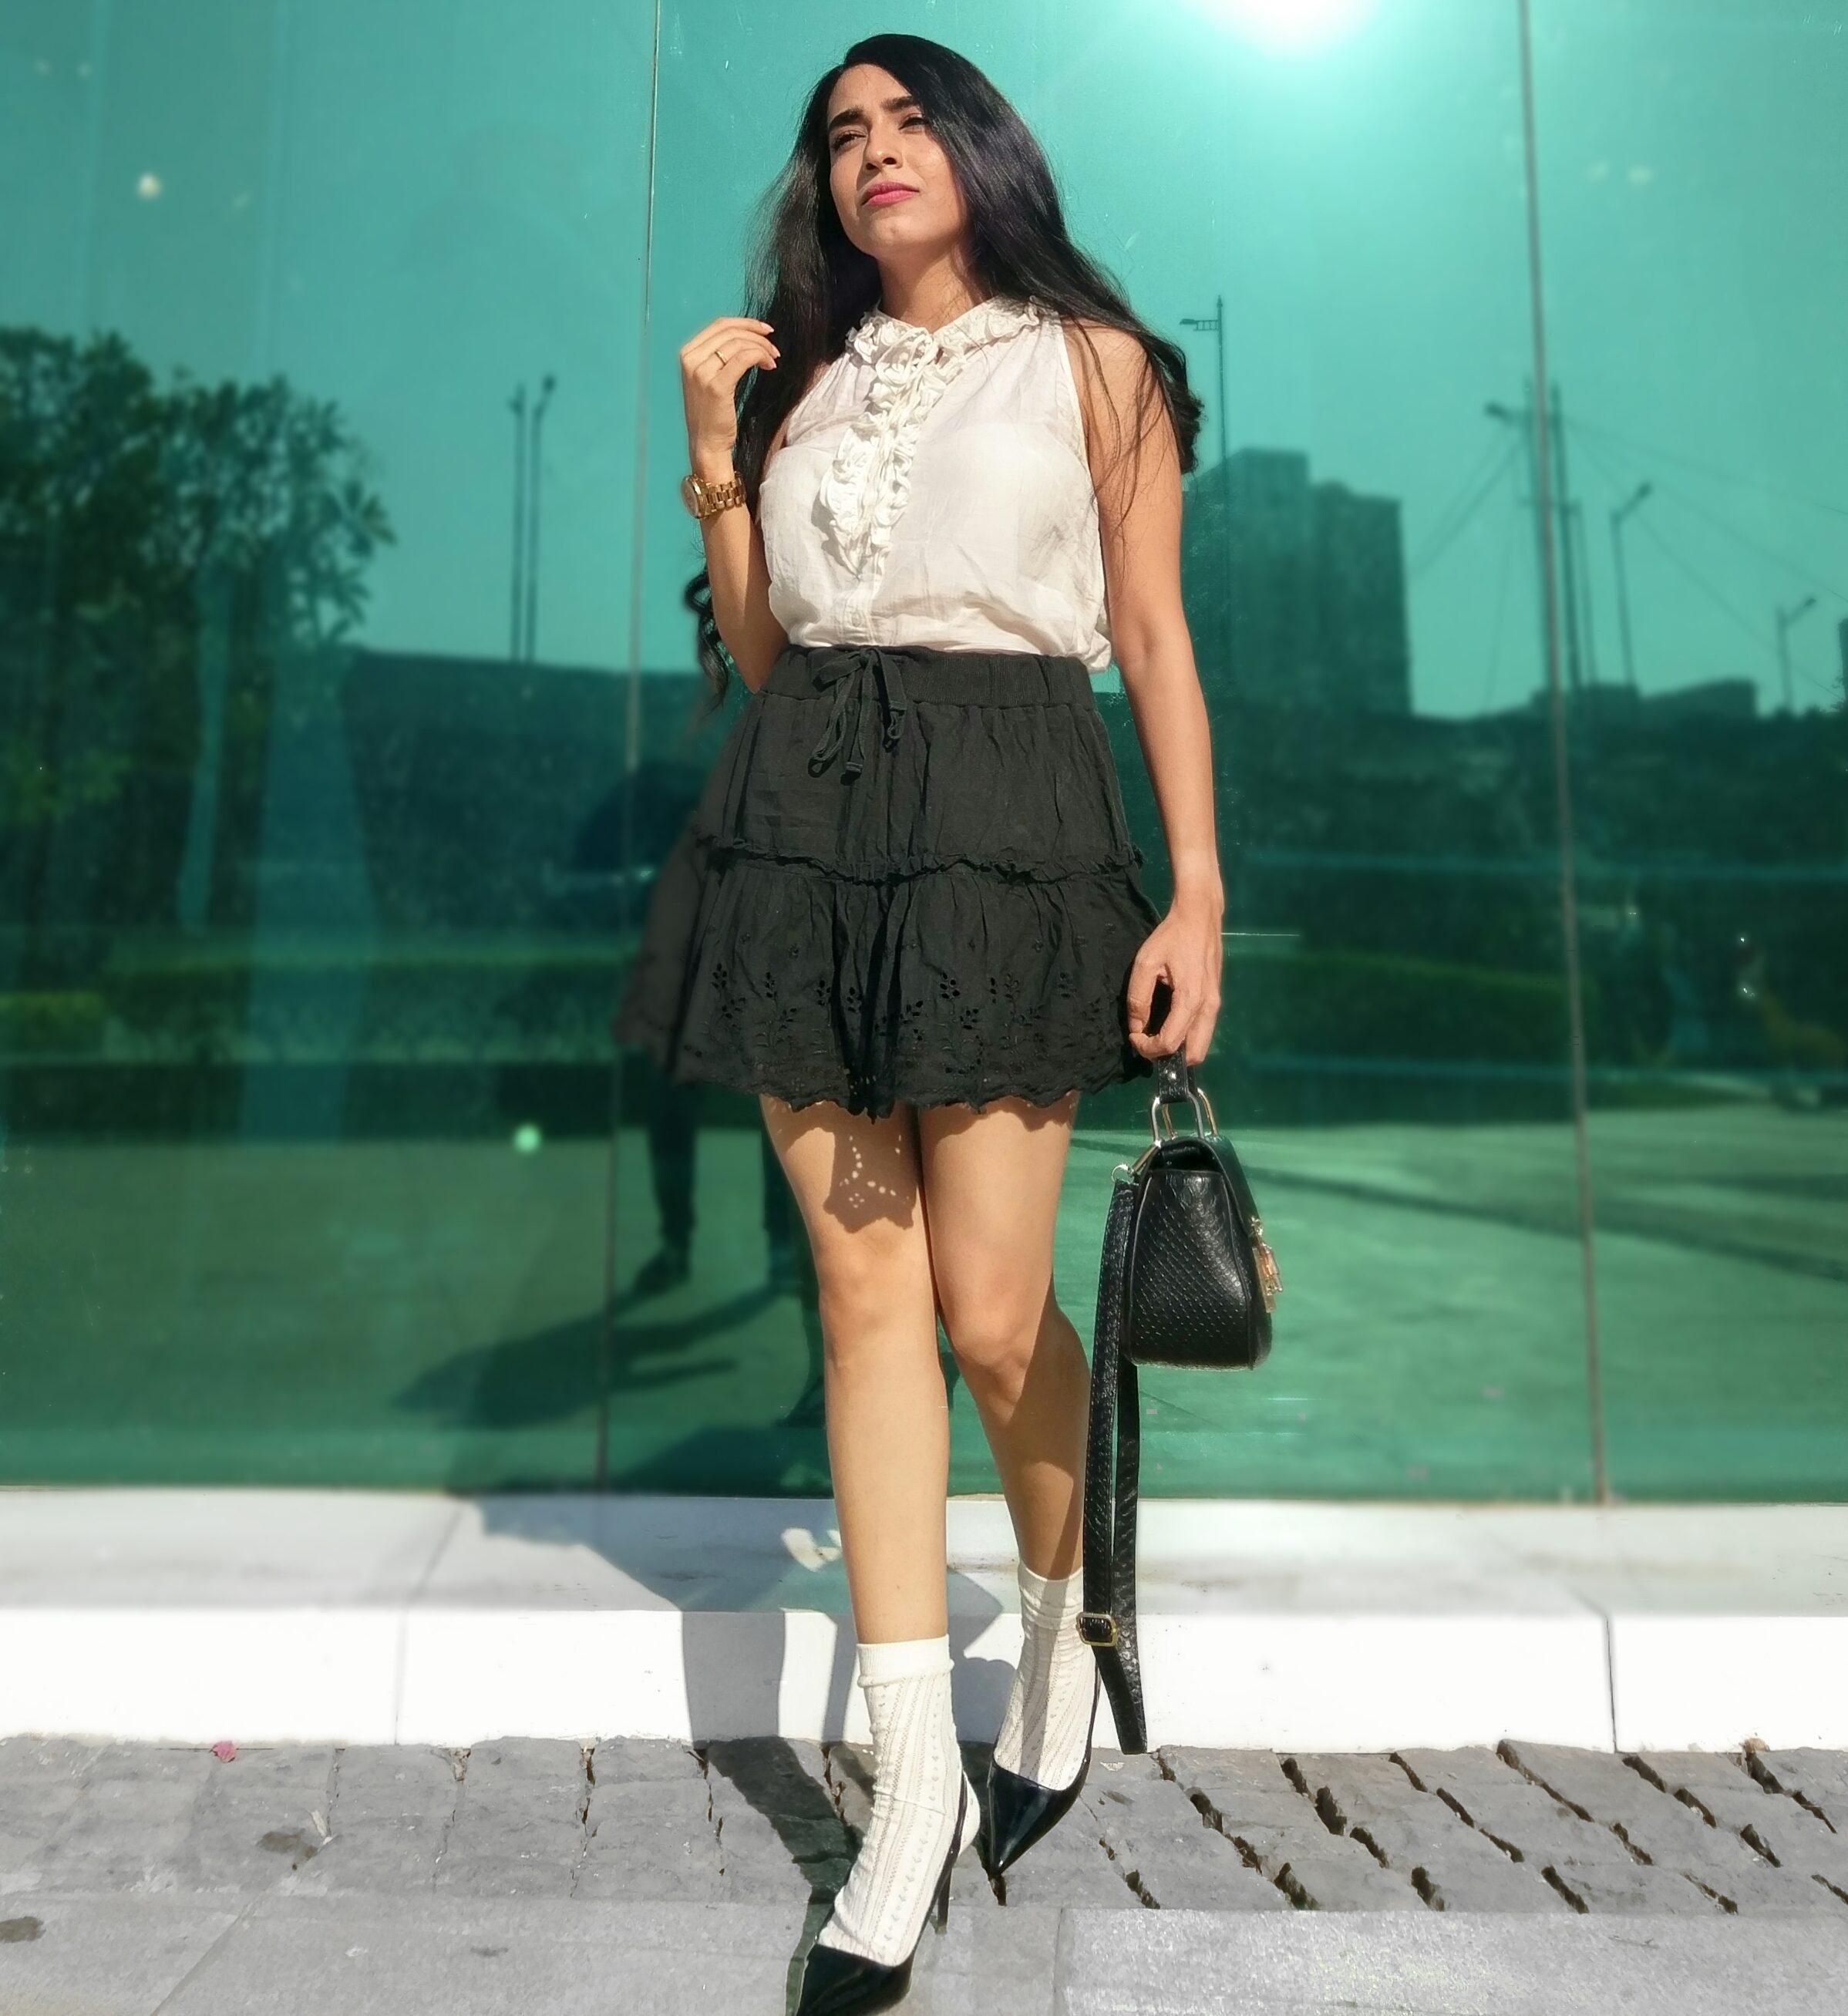 Ruffles, frills, monochrome, black & white, heels with socks, ootd, lookbook, style